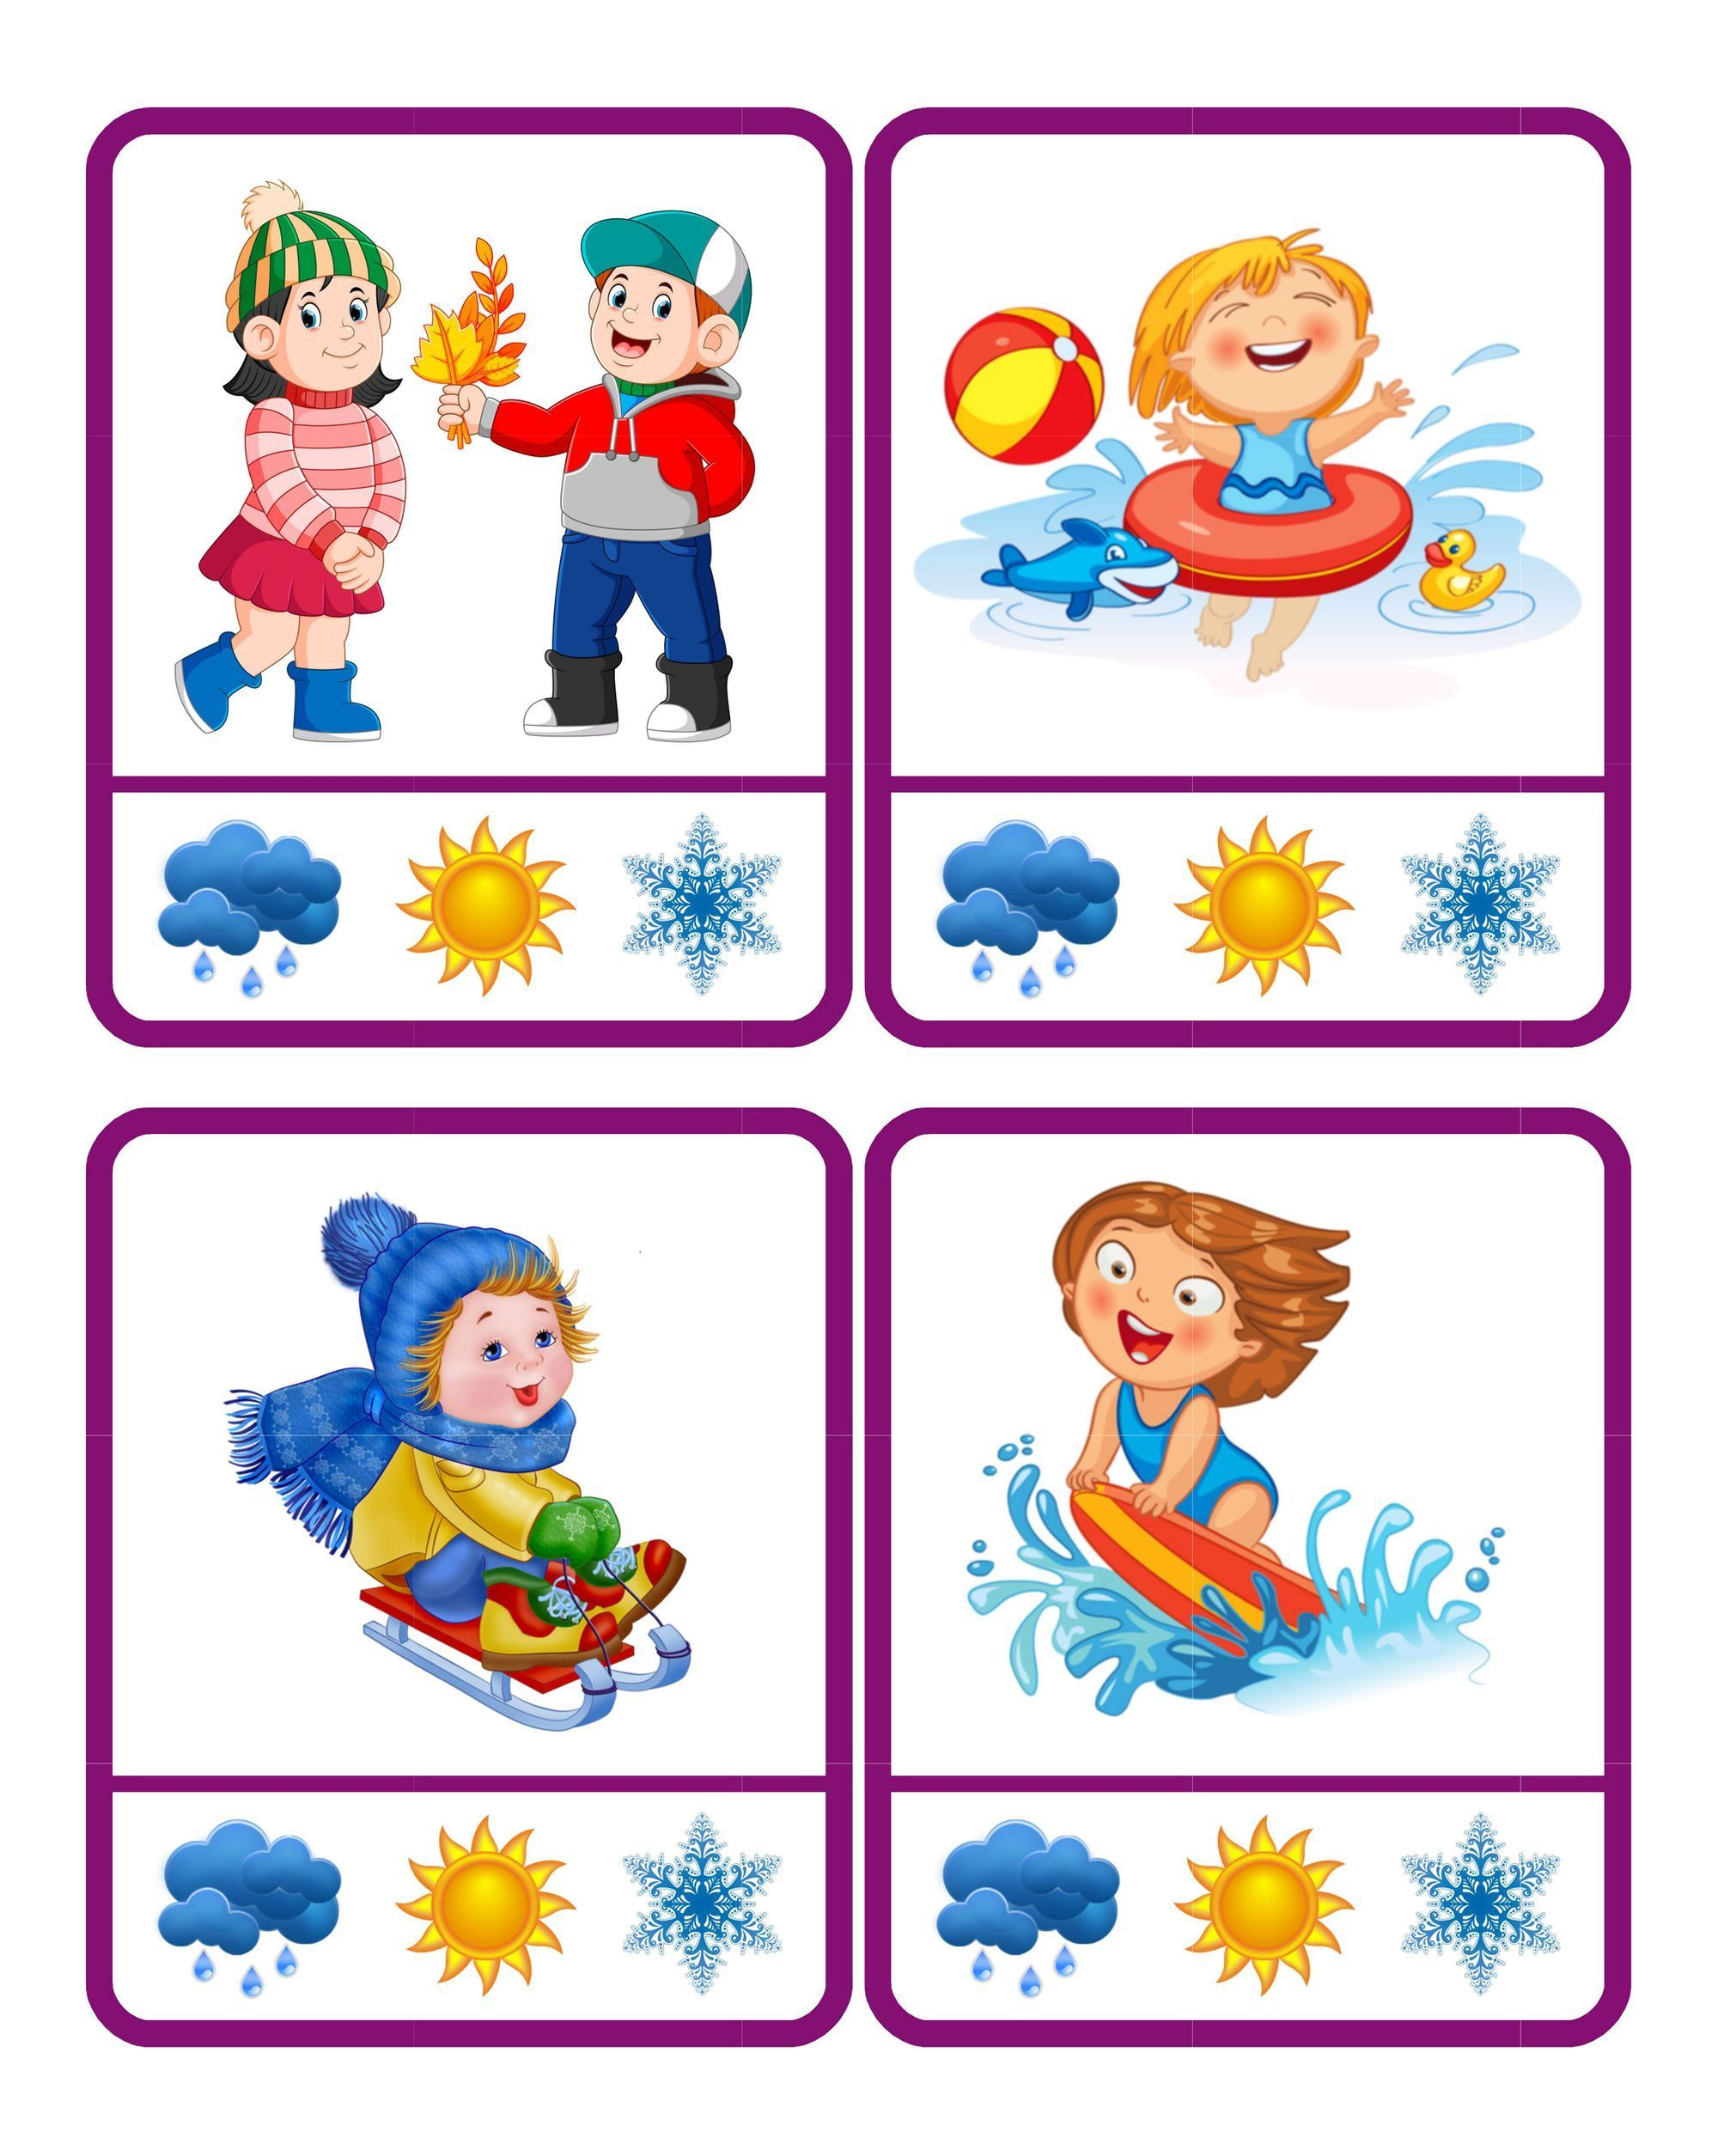 Logical Games For Children In 2020 With Images Przedszkole Gry Preschool Learning Activities Creative Curriculum Preschool Educational Games For Kids [ 2510 x 2000 Pixel ]